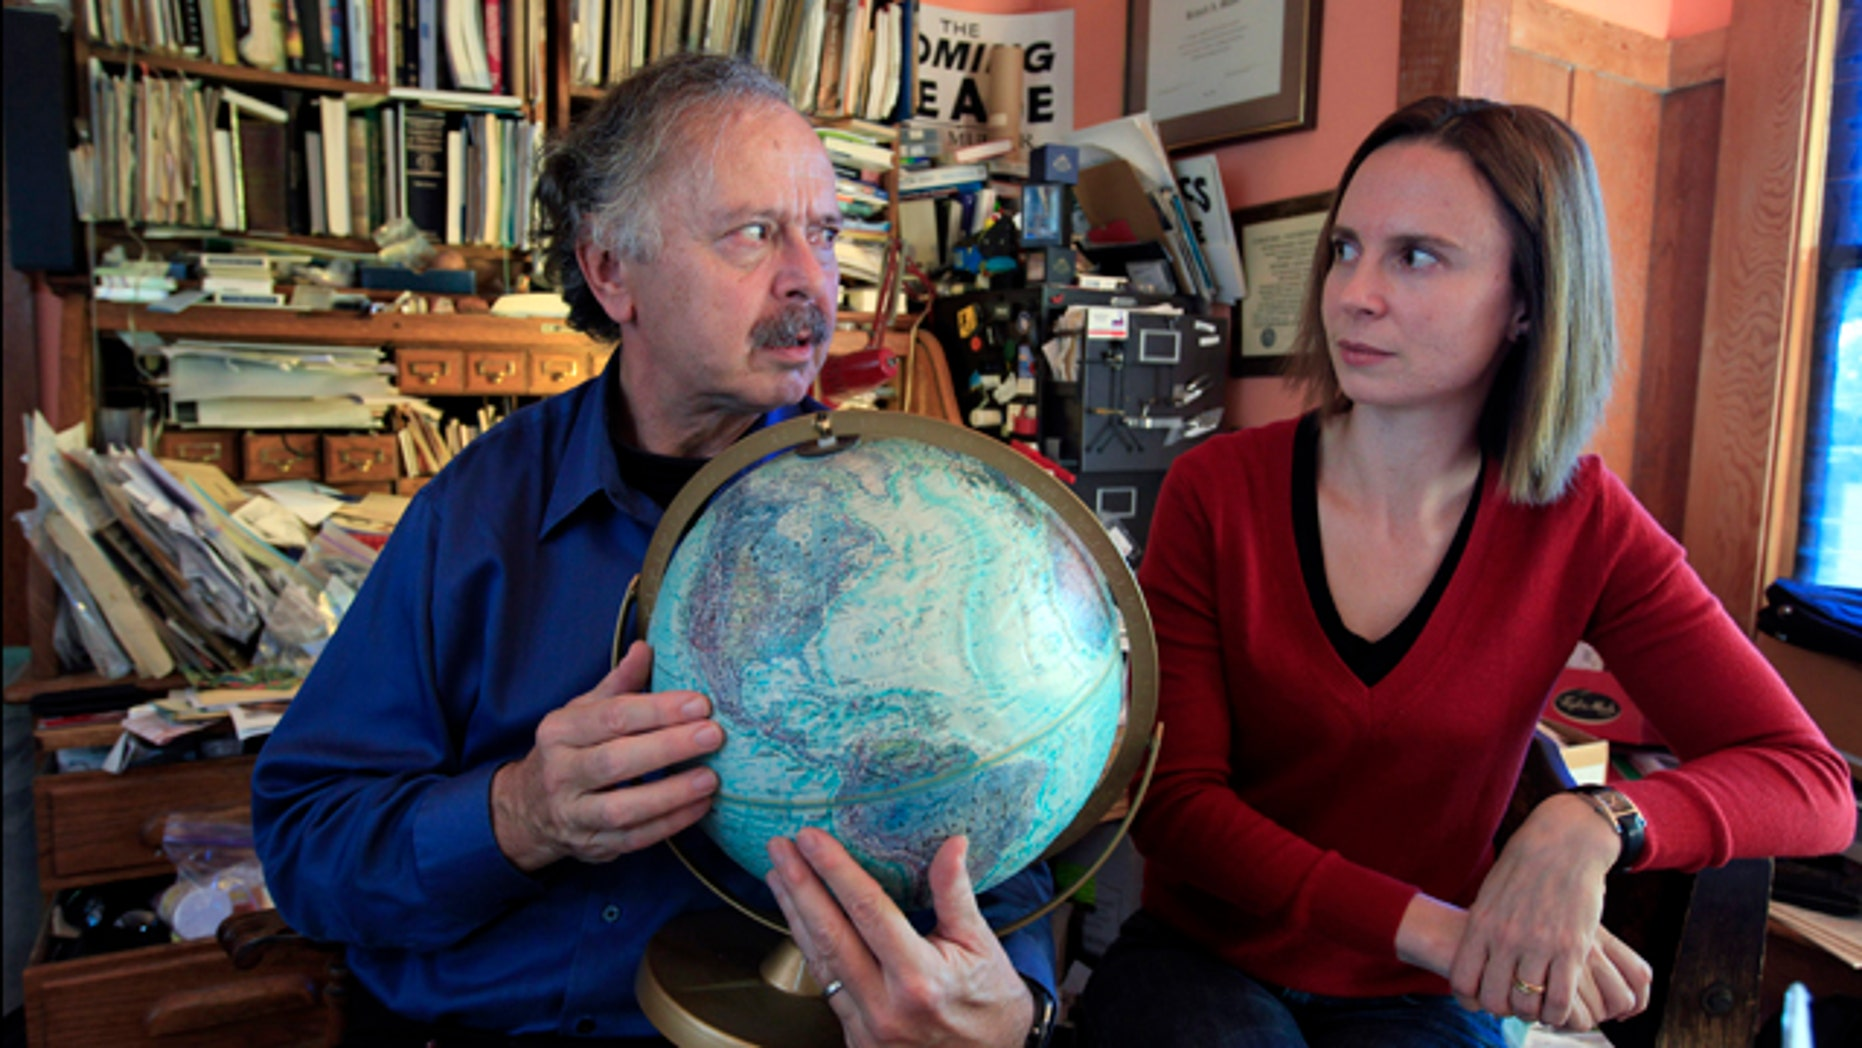 Richard Muller, left, and his daughter, Elizabeth Muller, hold a globe as they talk about their study on climate at their home in Berkeley, Calif.